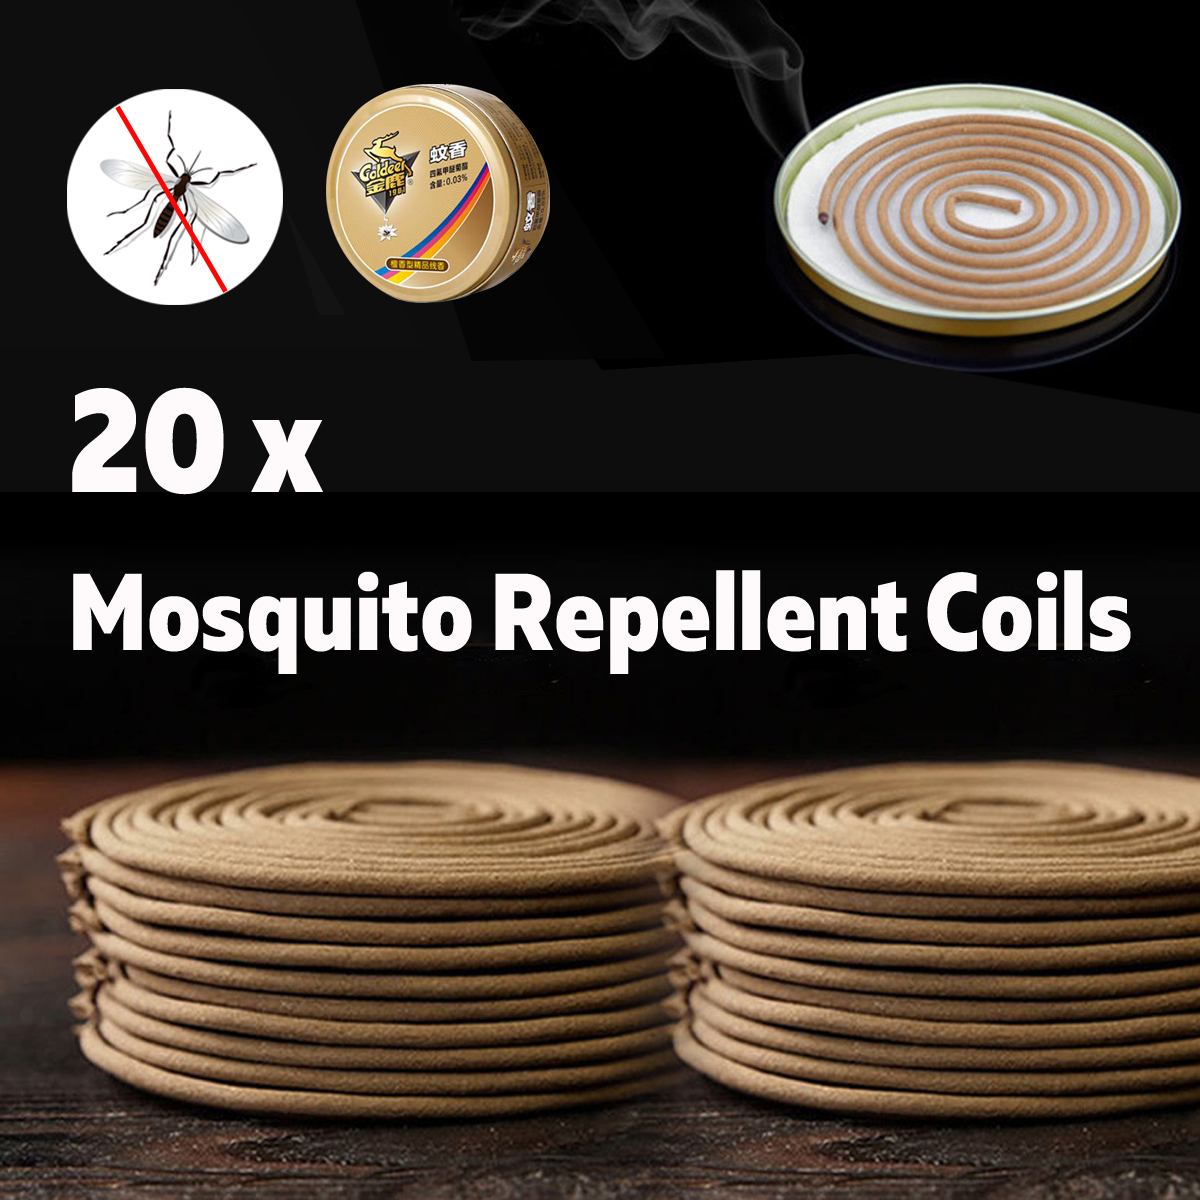 20Pcs Outdoor Mosquito Repellent Coils Incense Spirals Insect Bug Killers Mosquito Dispeller